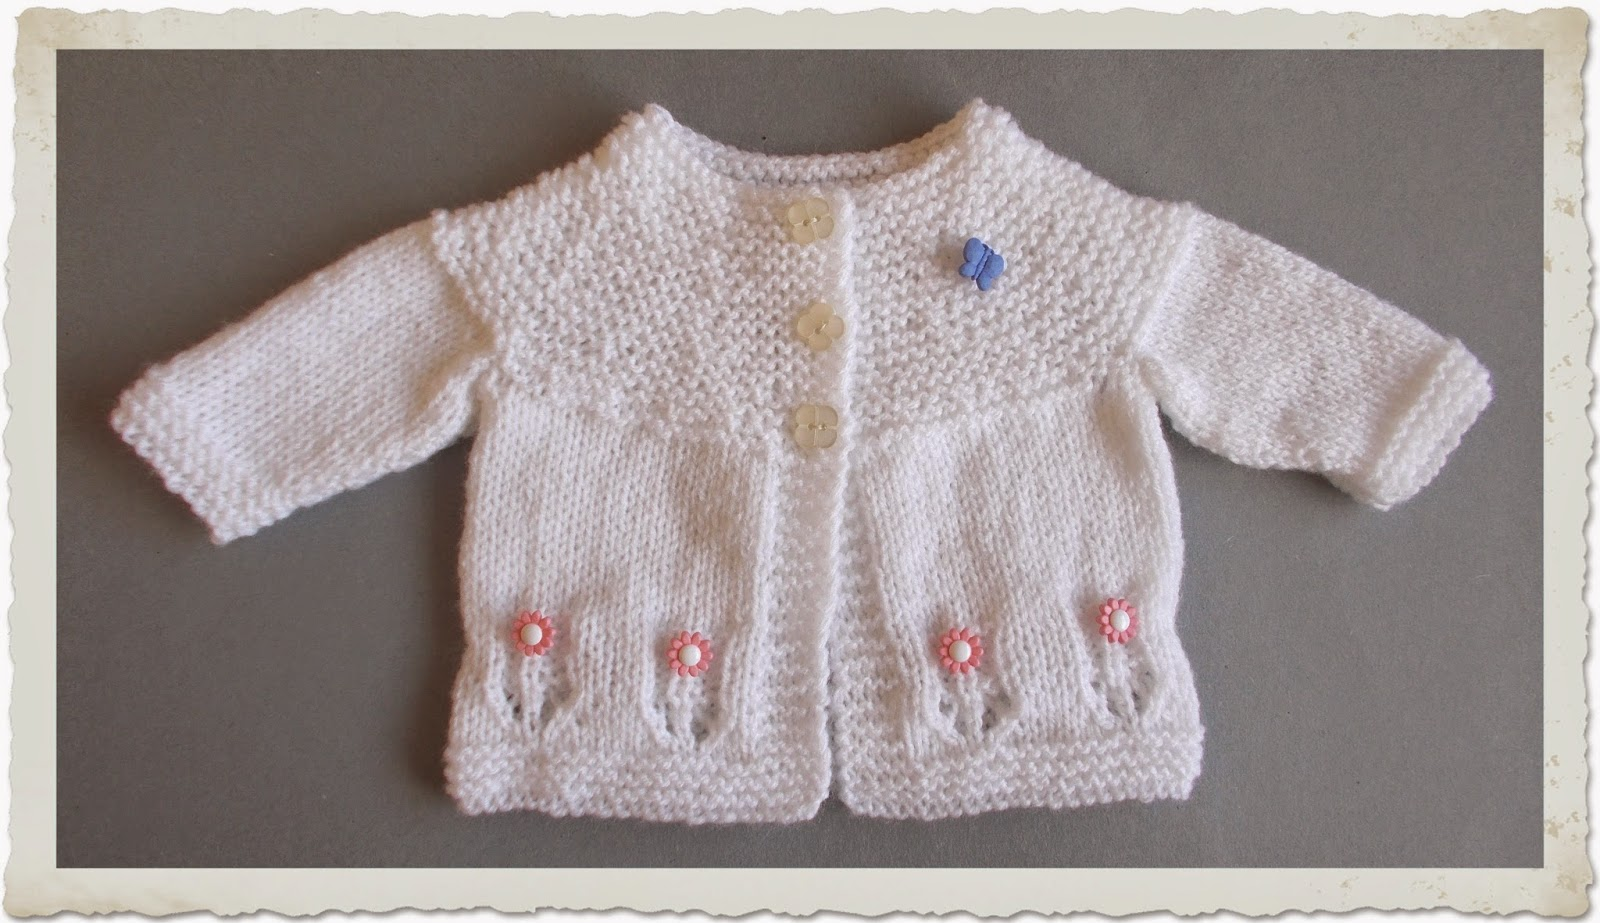 cd99f4706a80 made-by-marianna  My Free Knitting Patterns